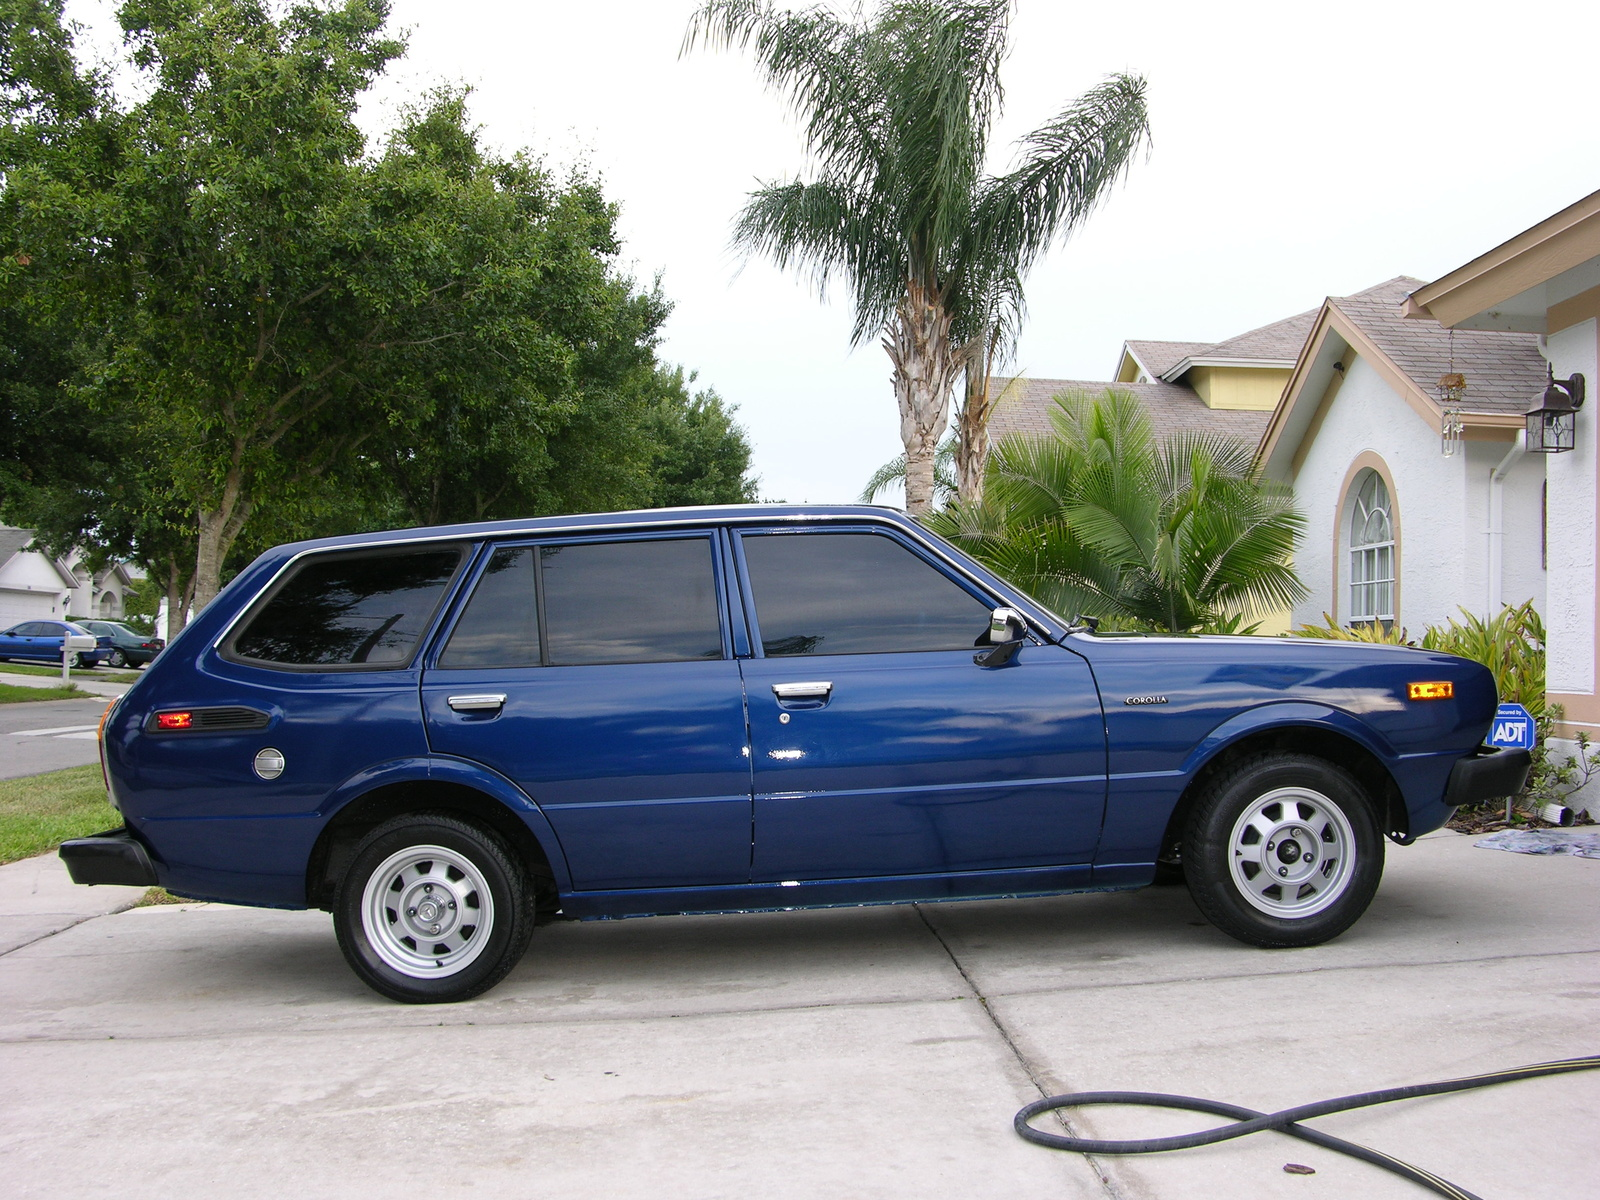 1979 Toyota Corolla DX, Takes me to work for the last 30 years., exterior